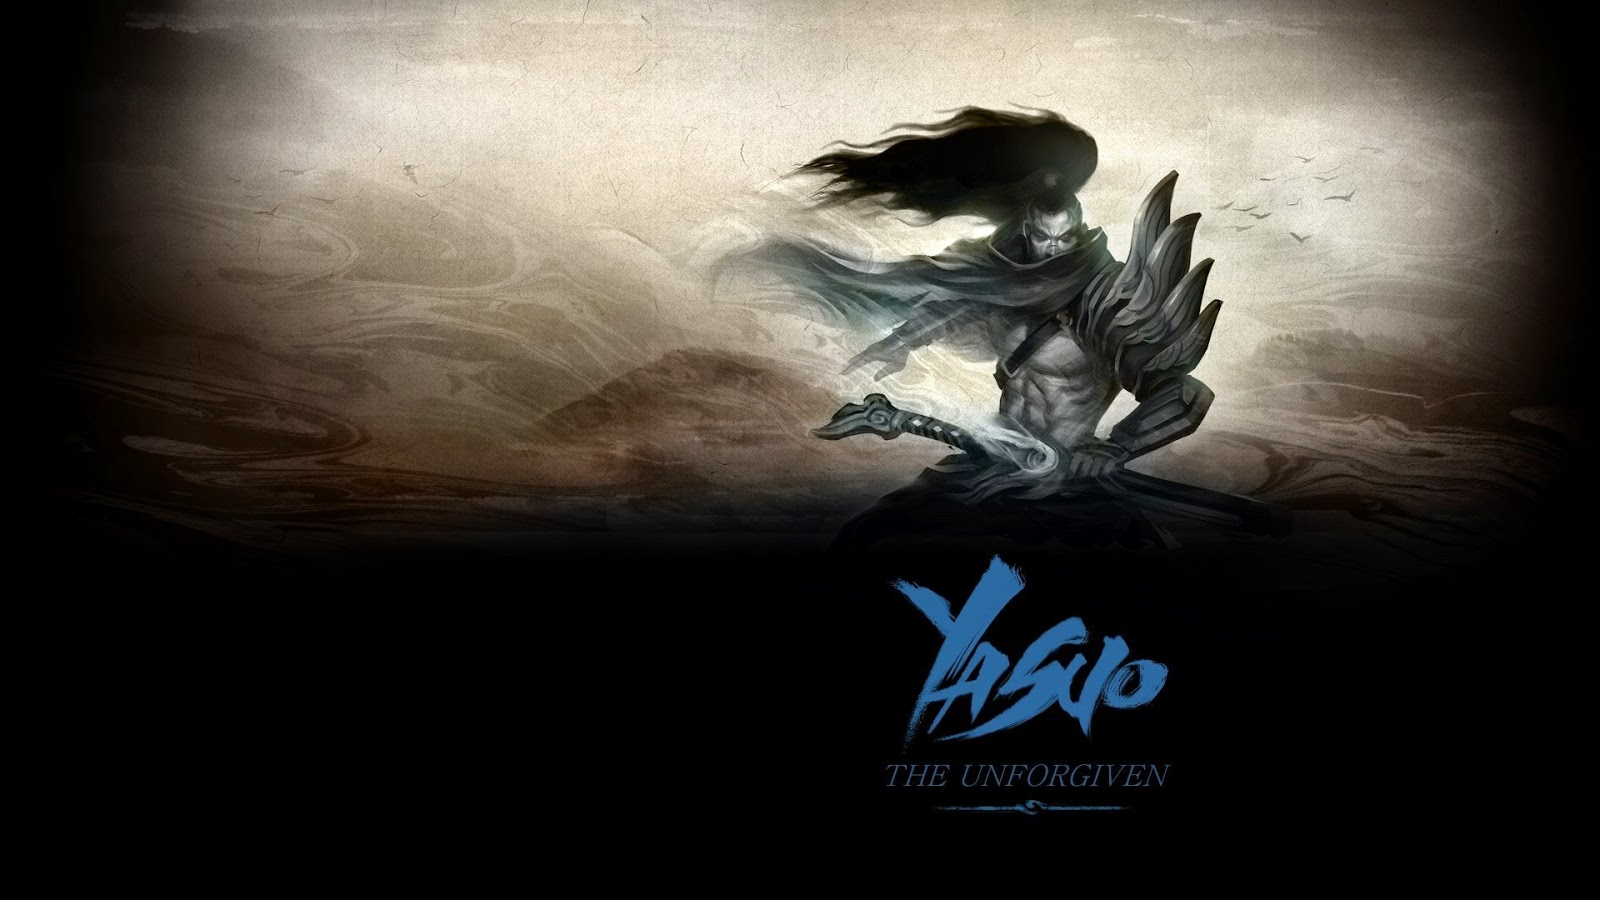 yasuo league of legends wallpaper, yasuo desktop wallpaper